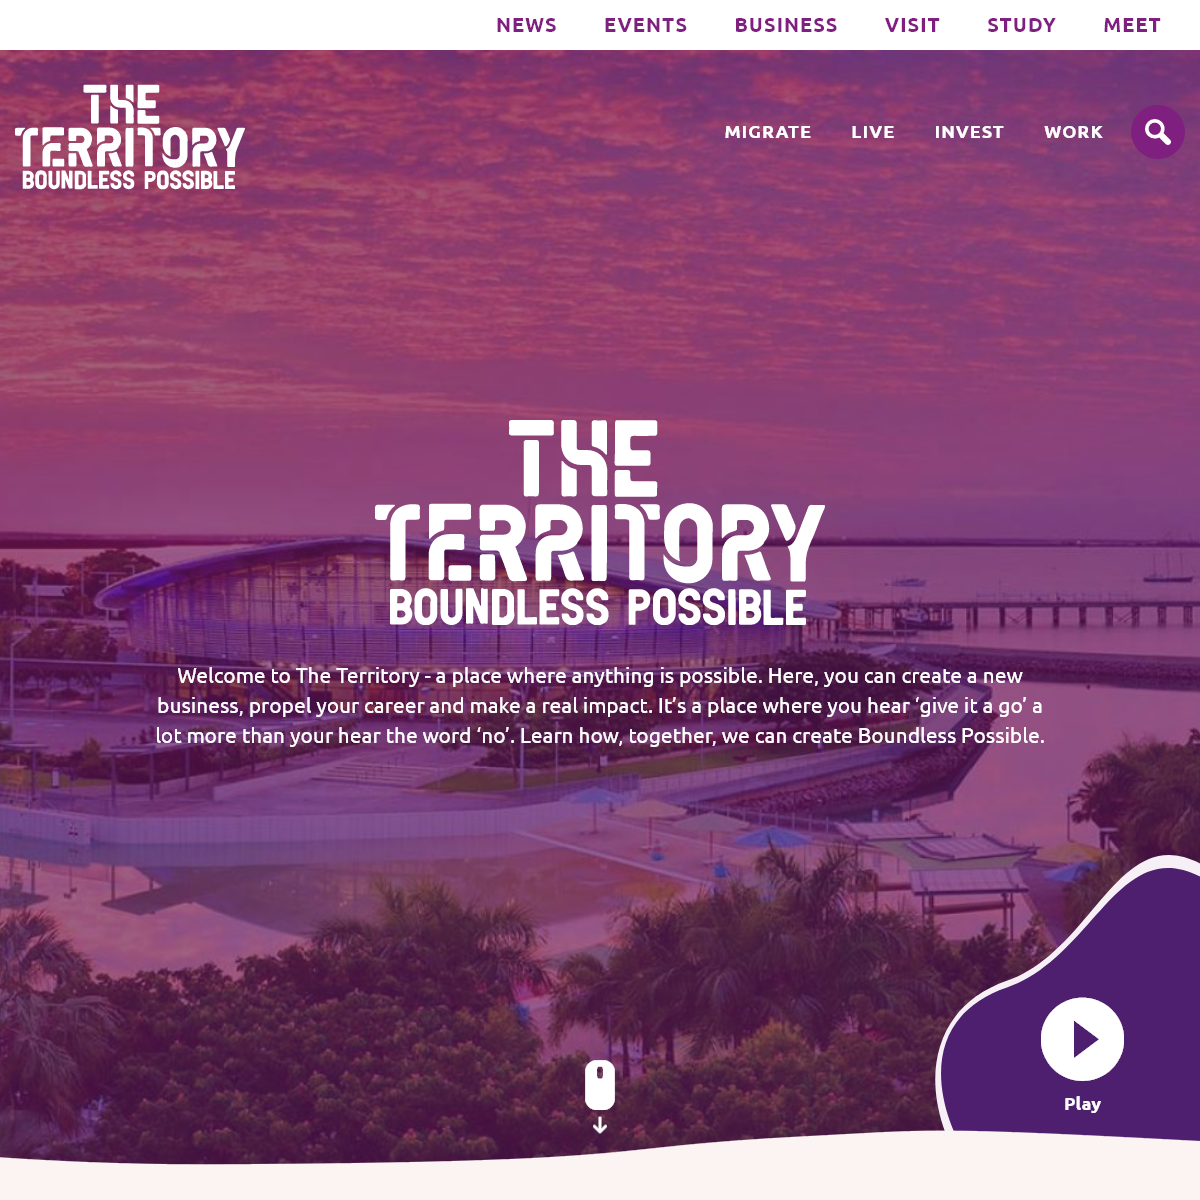 Migrate, work, live and invest - Australia`s Northern Territory